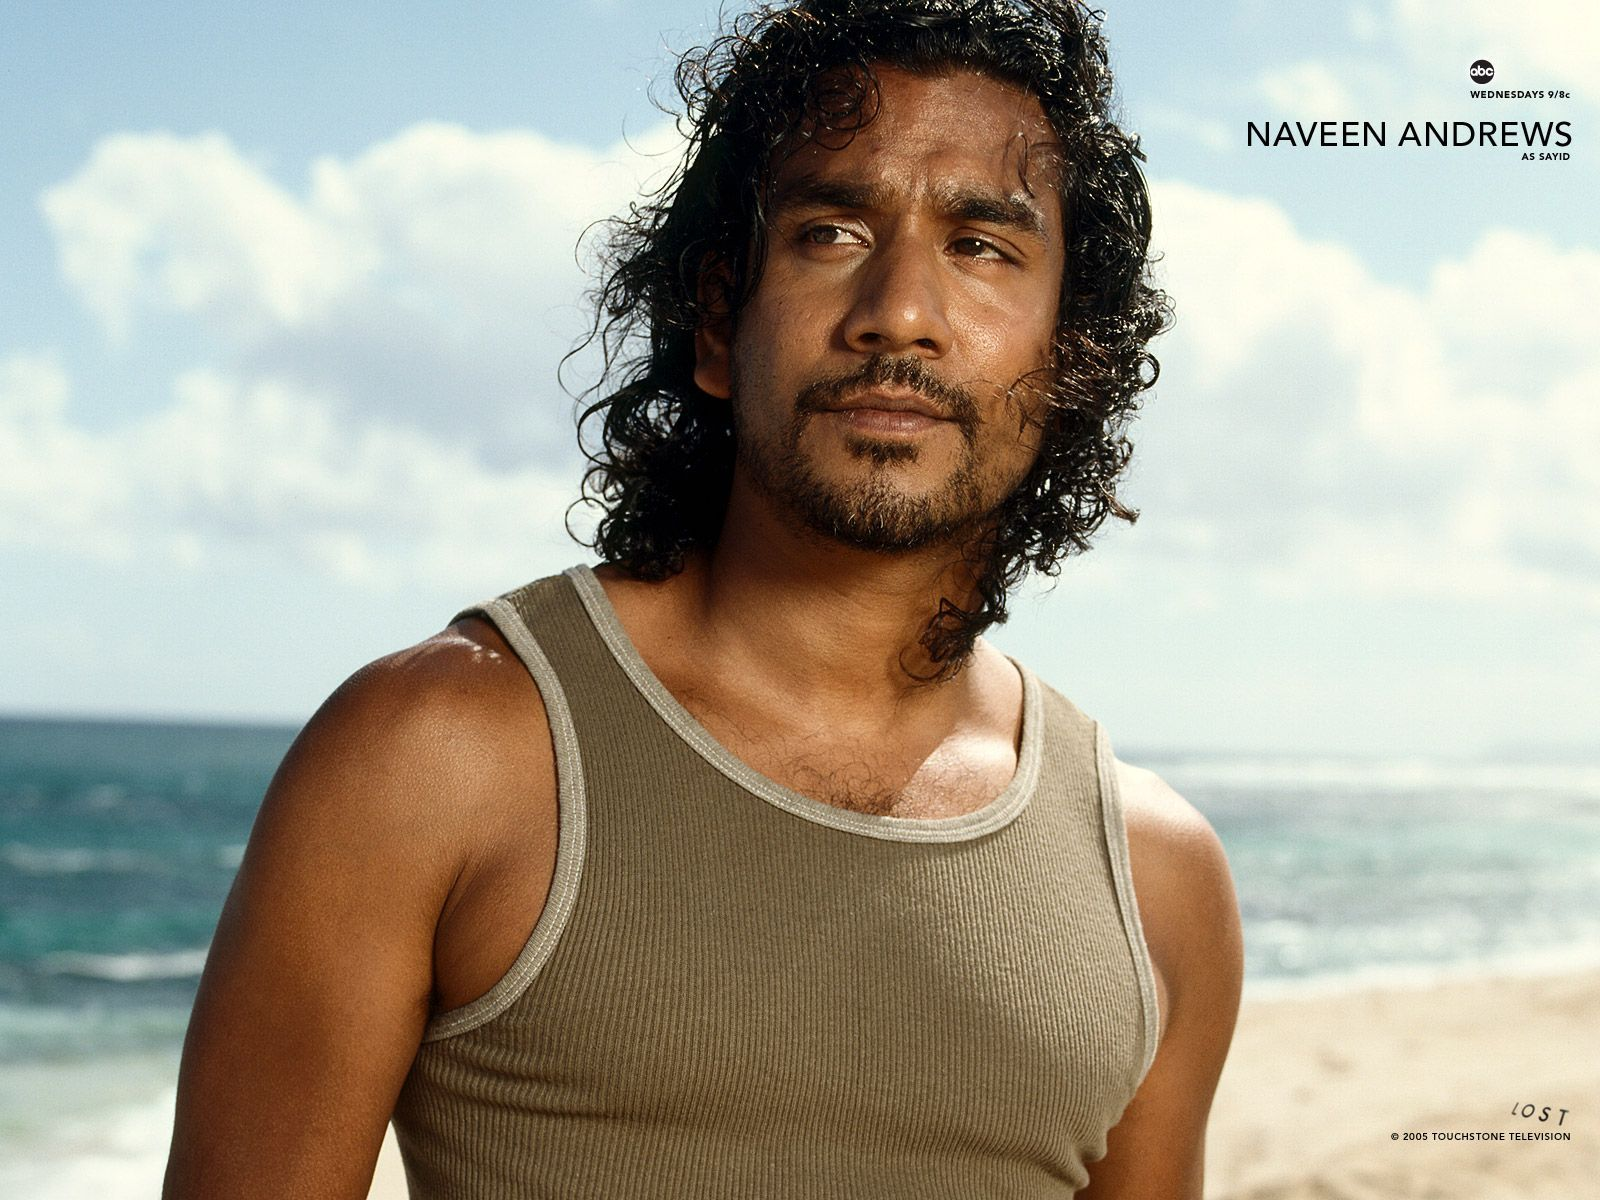 Naveen Andrews (born 1969 (naturalized American citizen) nudes (82 foto and video), Ass, Is a cute, Feet, panties 2020